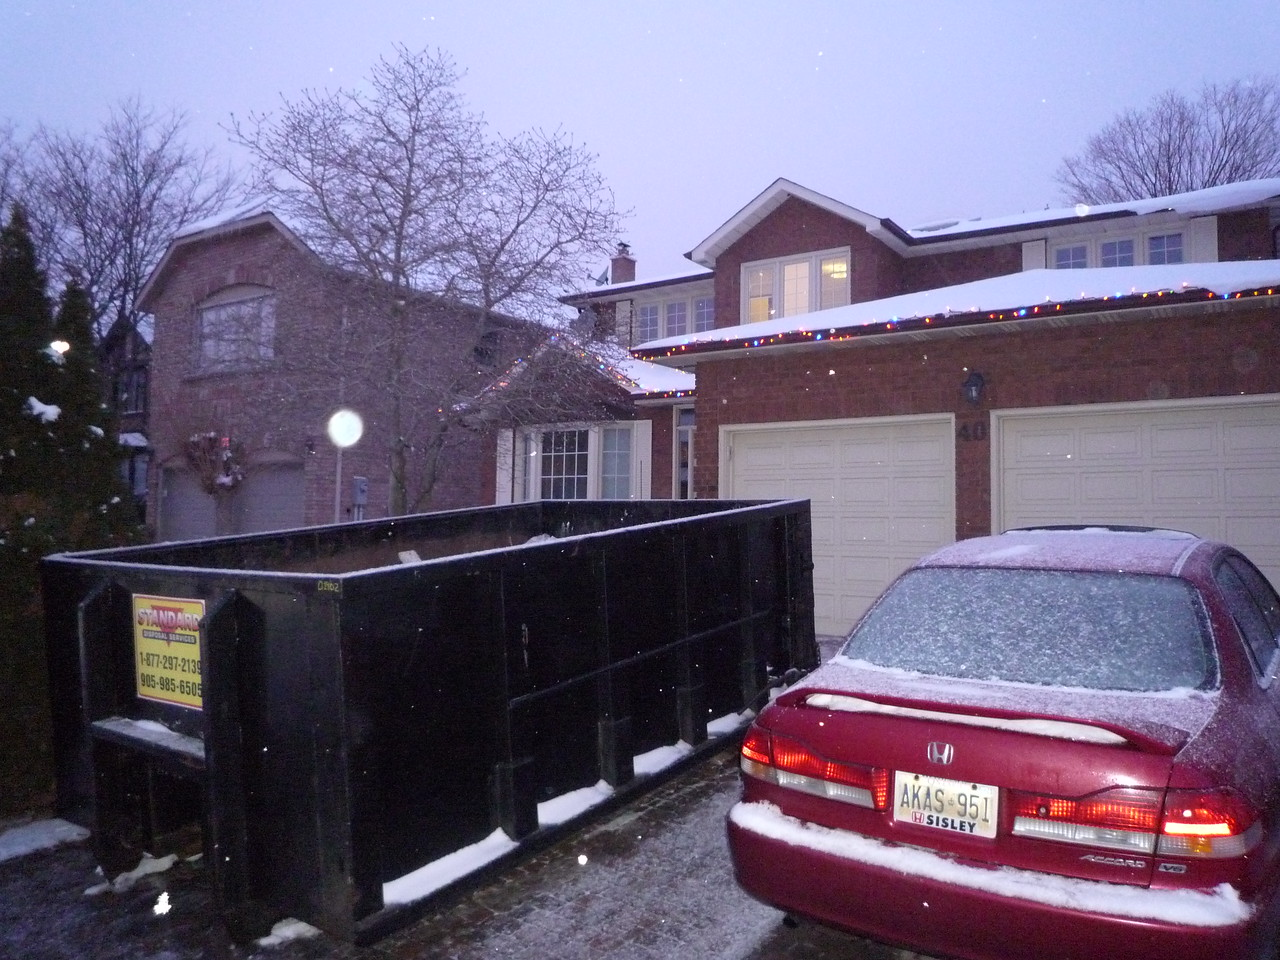 For 2 days I had a dumpster in the driveway.  Too bad I didn't really make use of it while it was here.